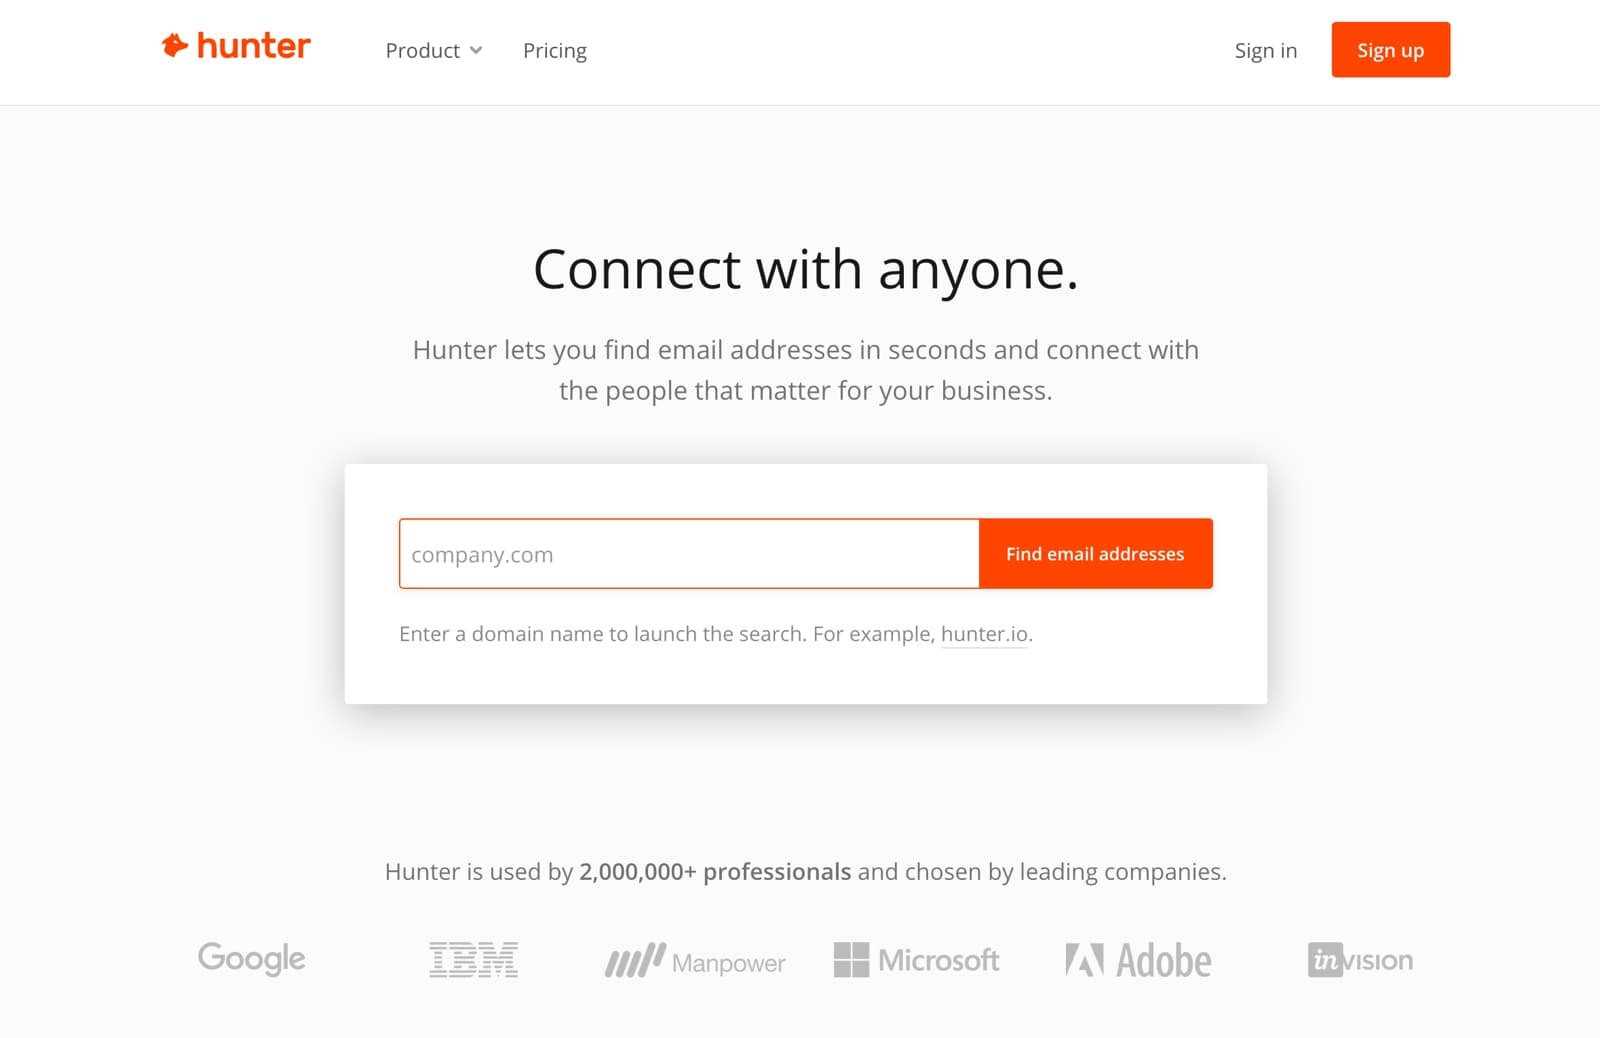 hunter email finder tool by domain name